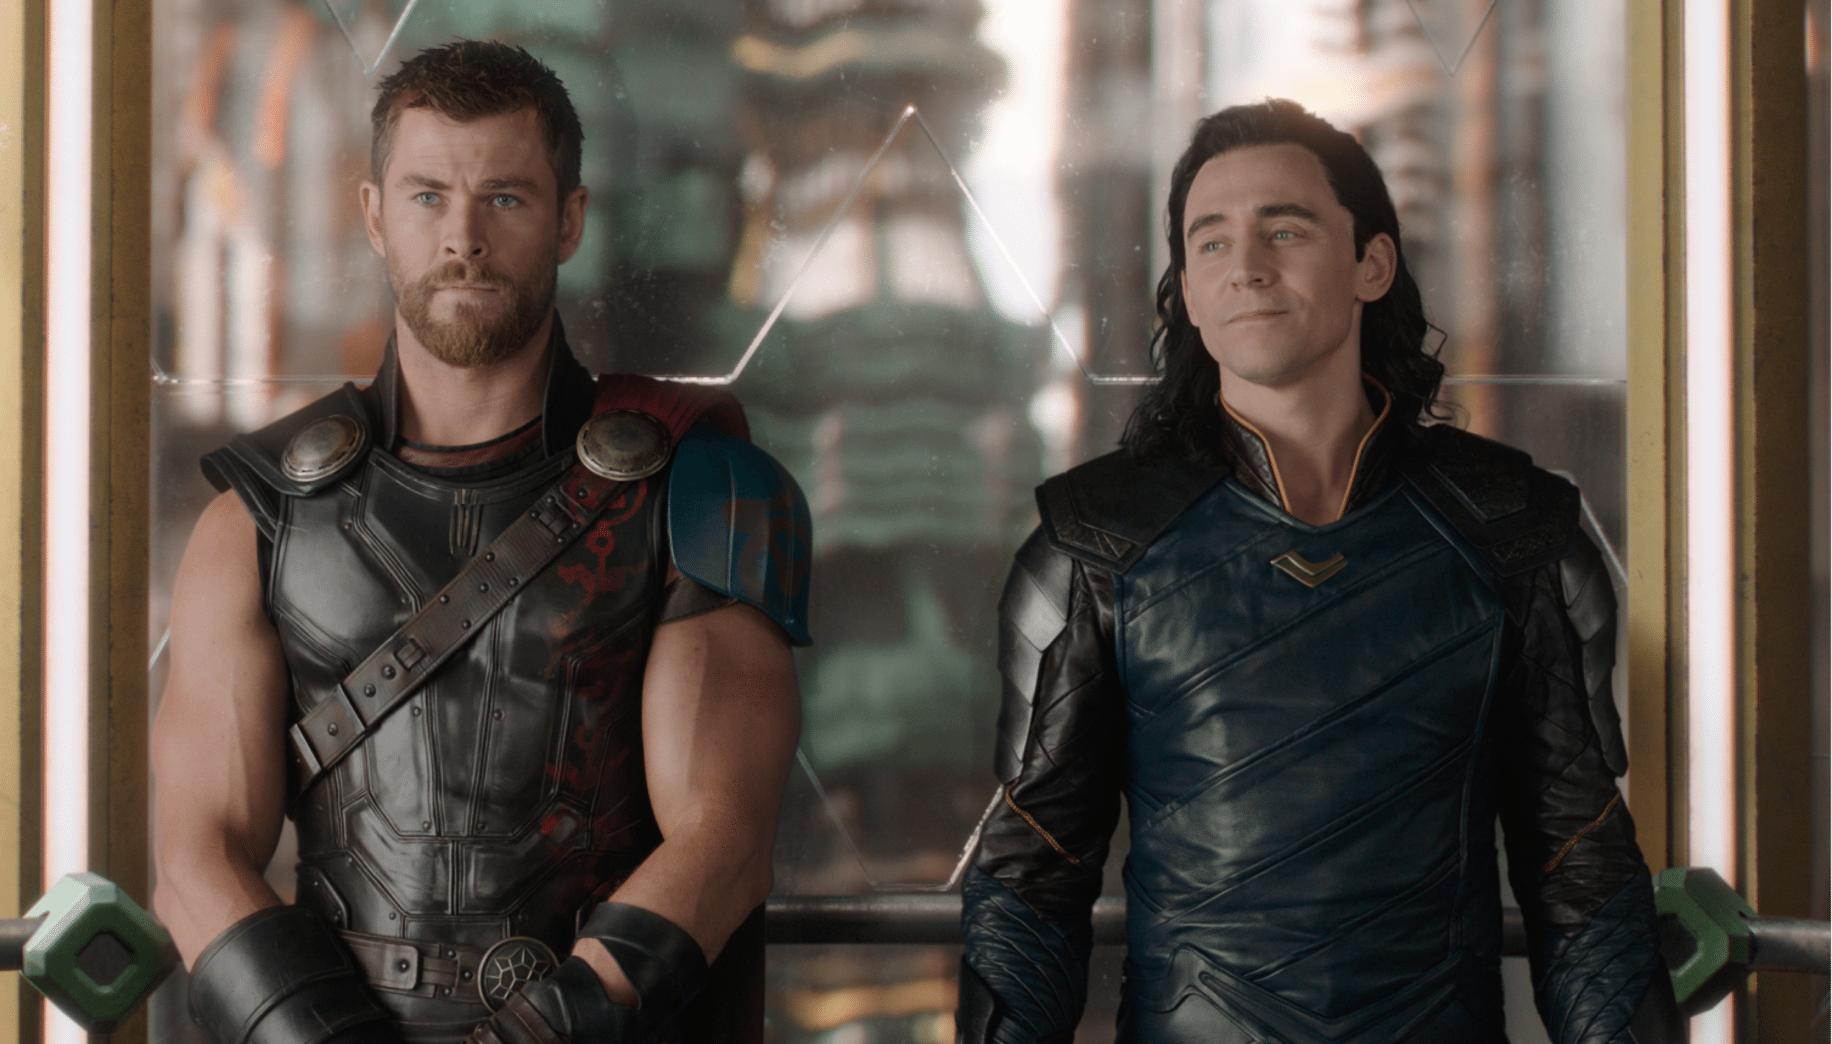 'Thor: Ragnarok' Review: Fun, Fireworks, and Zeppelin